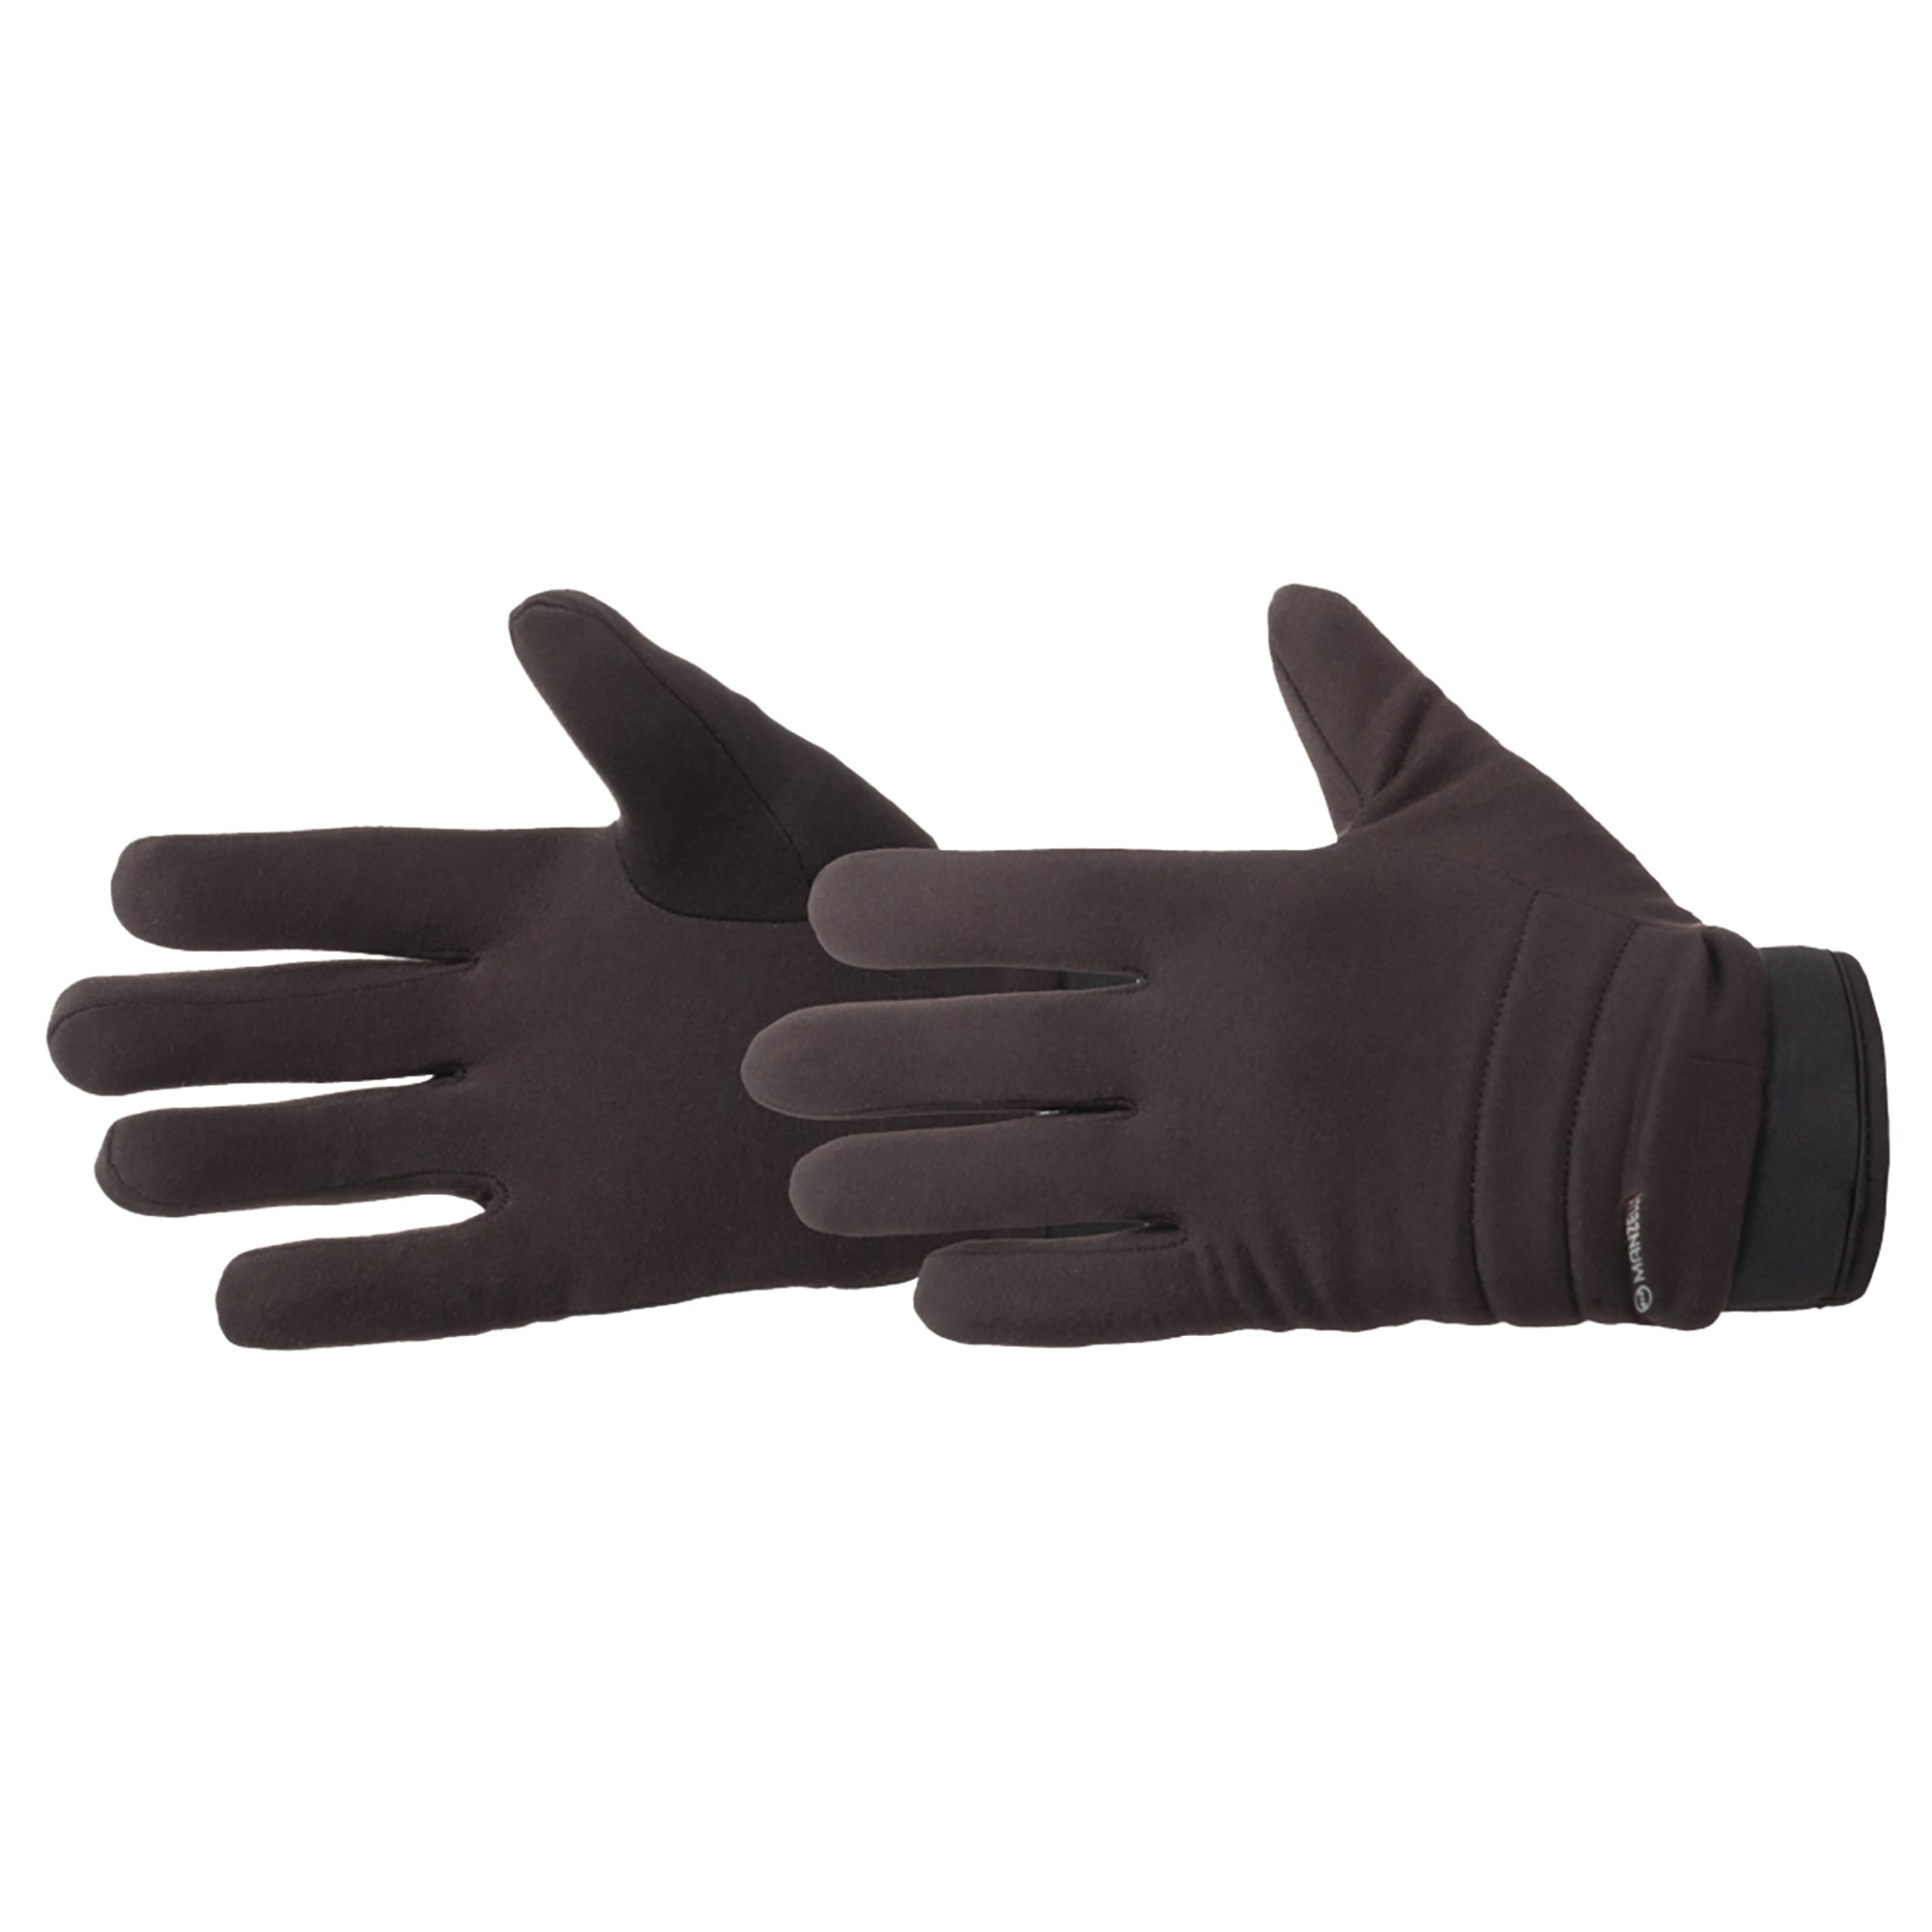 Manzella AFTON Gloves for Women